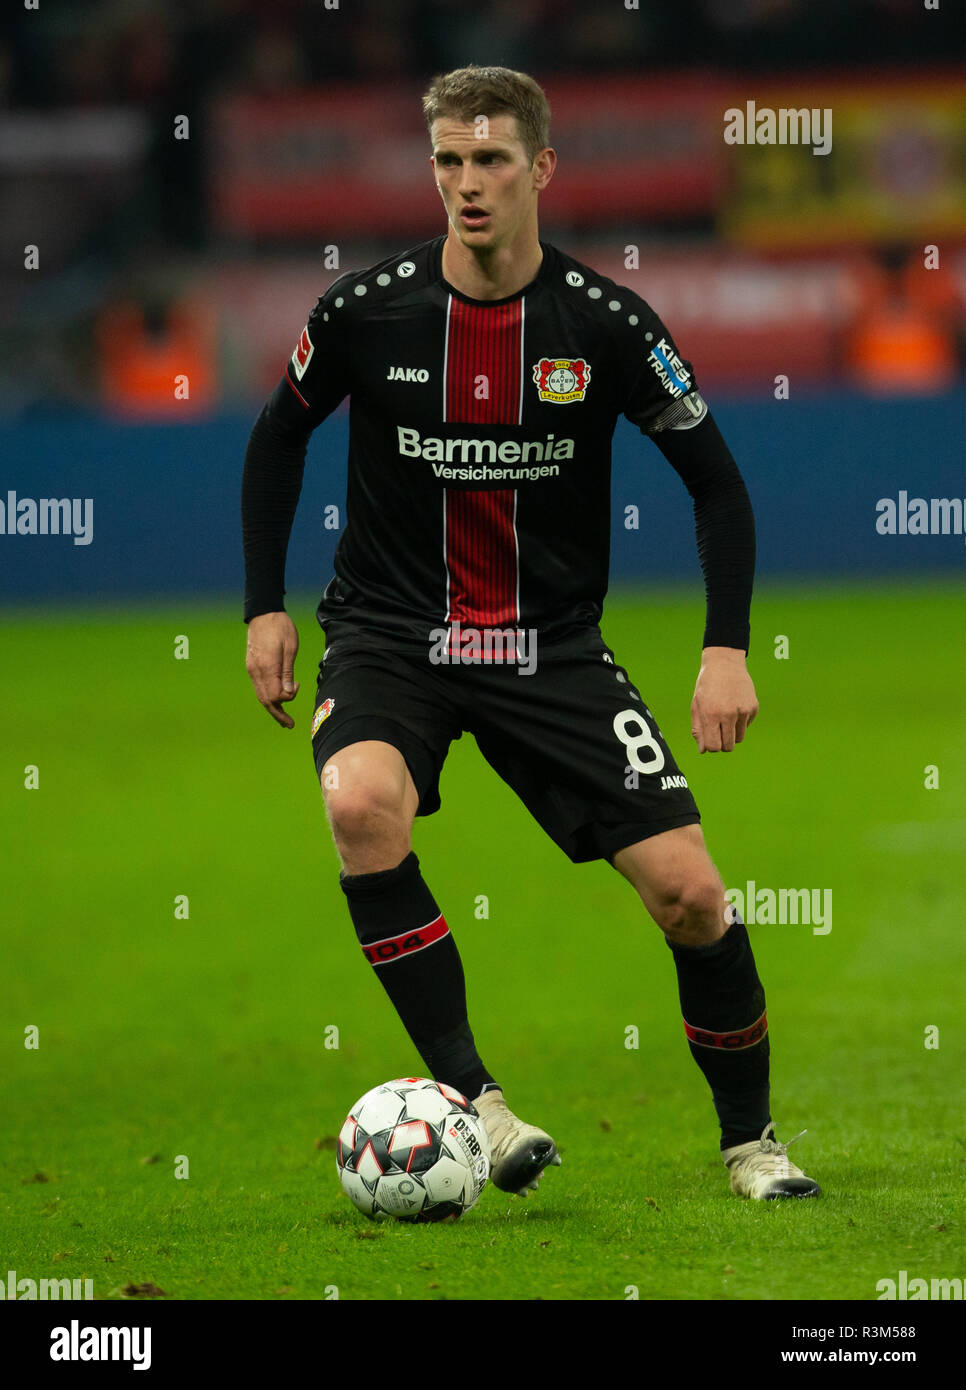 Page 2 - Lars Bender High Resolution Stock Photography and Images ...